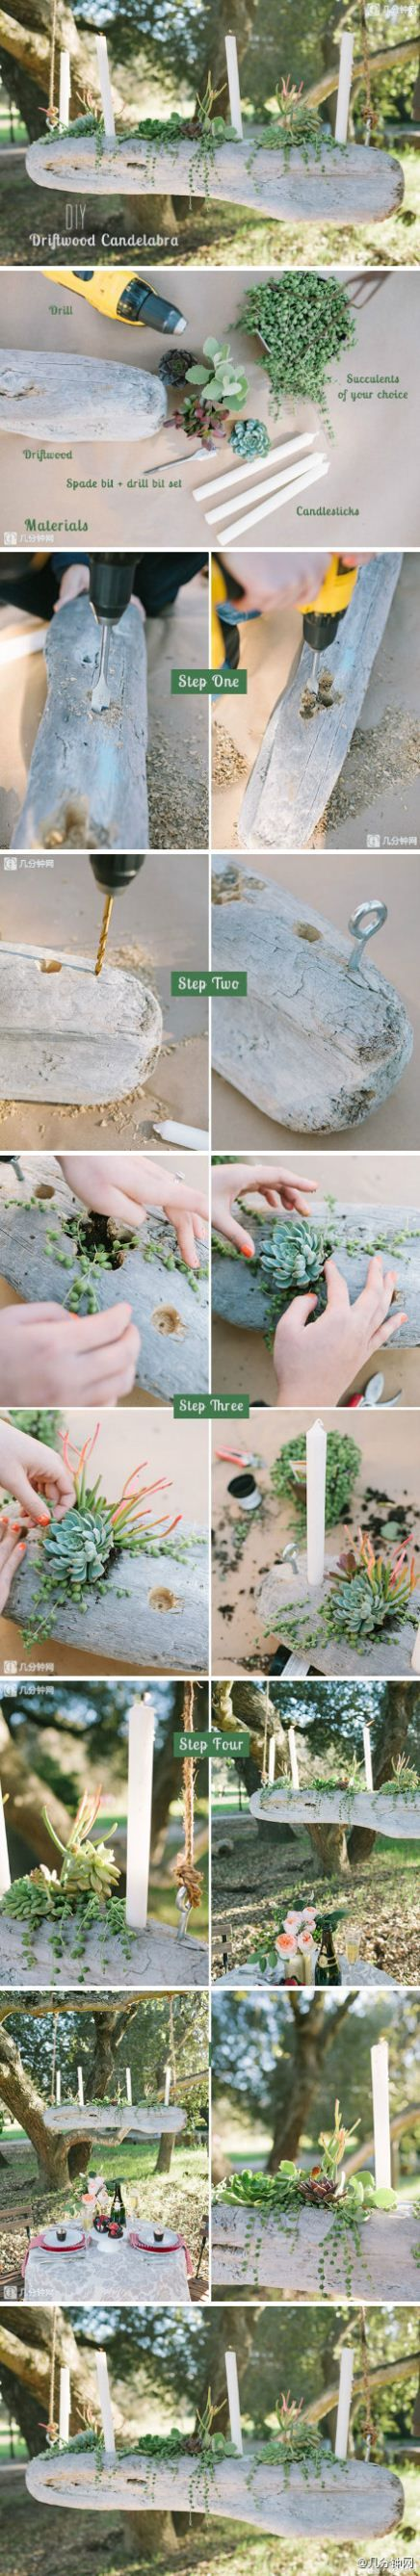 "I like this better without the candles, unless it is used for a table decoration like on a picnic table.   Great idea though, especially if you throw in some ""planted"" moss on part of it.  I would use a different wood.  The wood in the pic looks like stone, and stones don't hang in the air."